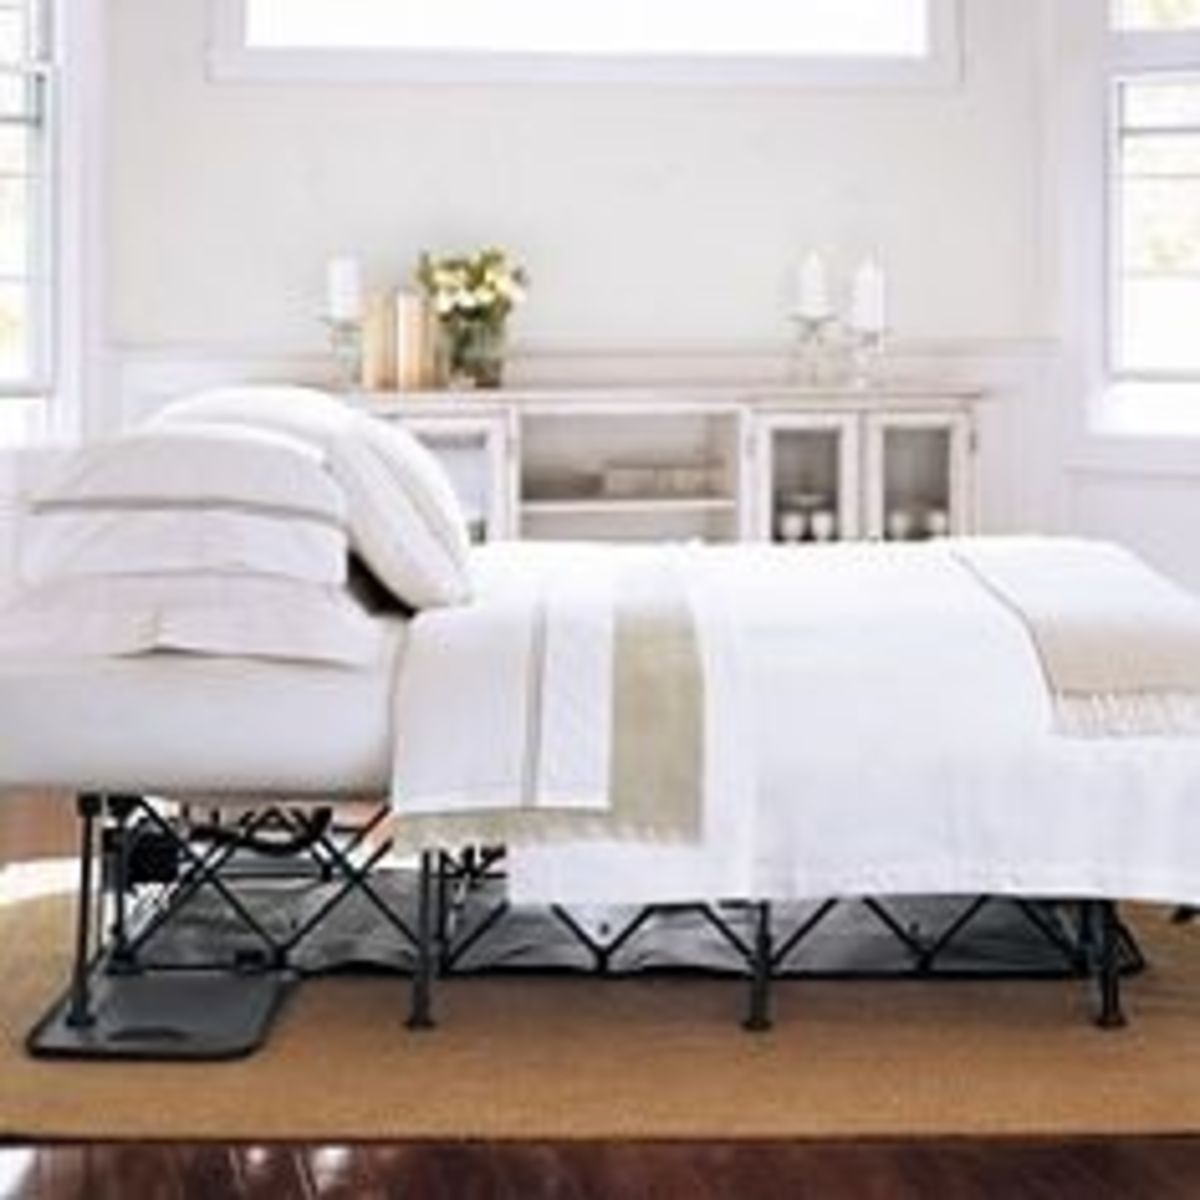 Serta EZ Queen Bed with Automatic Fold Out Inflatable Mattress with Steel Frame